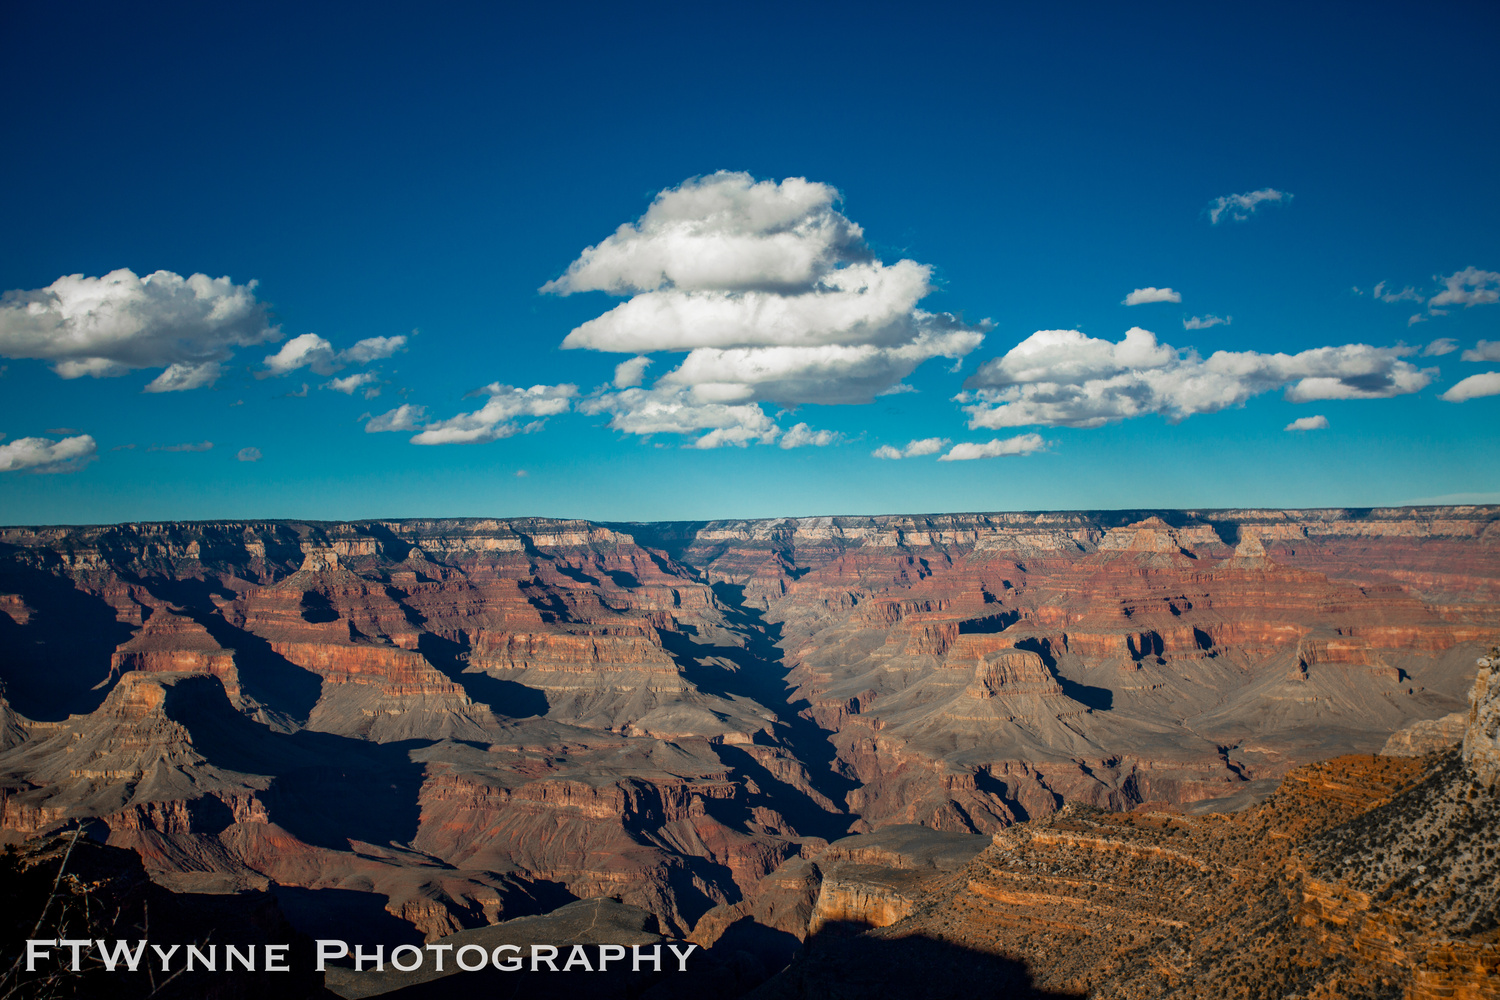 The Grand Canyon by David Wynne